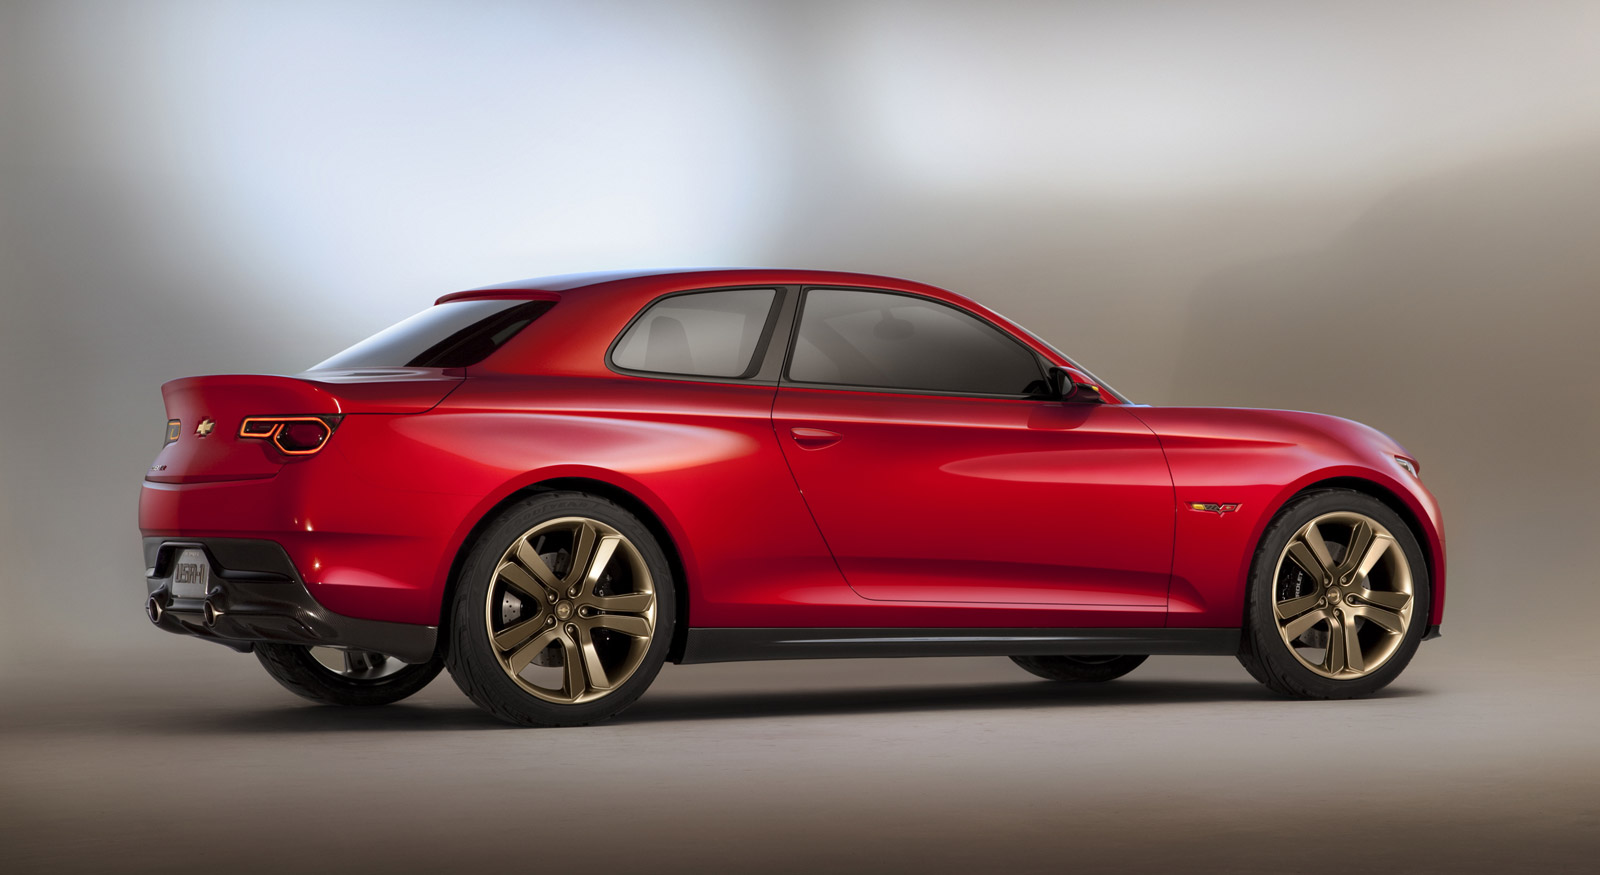 Chevy Wants A Rear-Drive Lightweight Sports Car